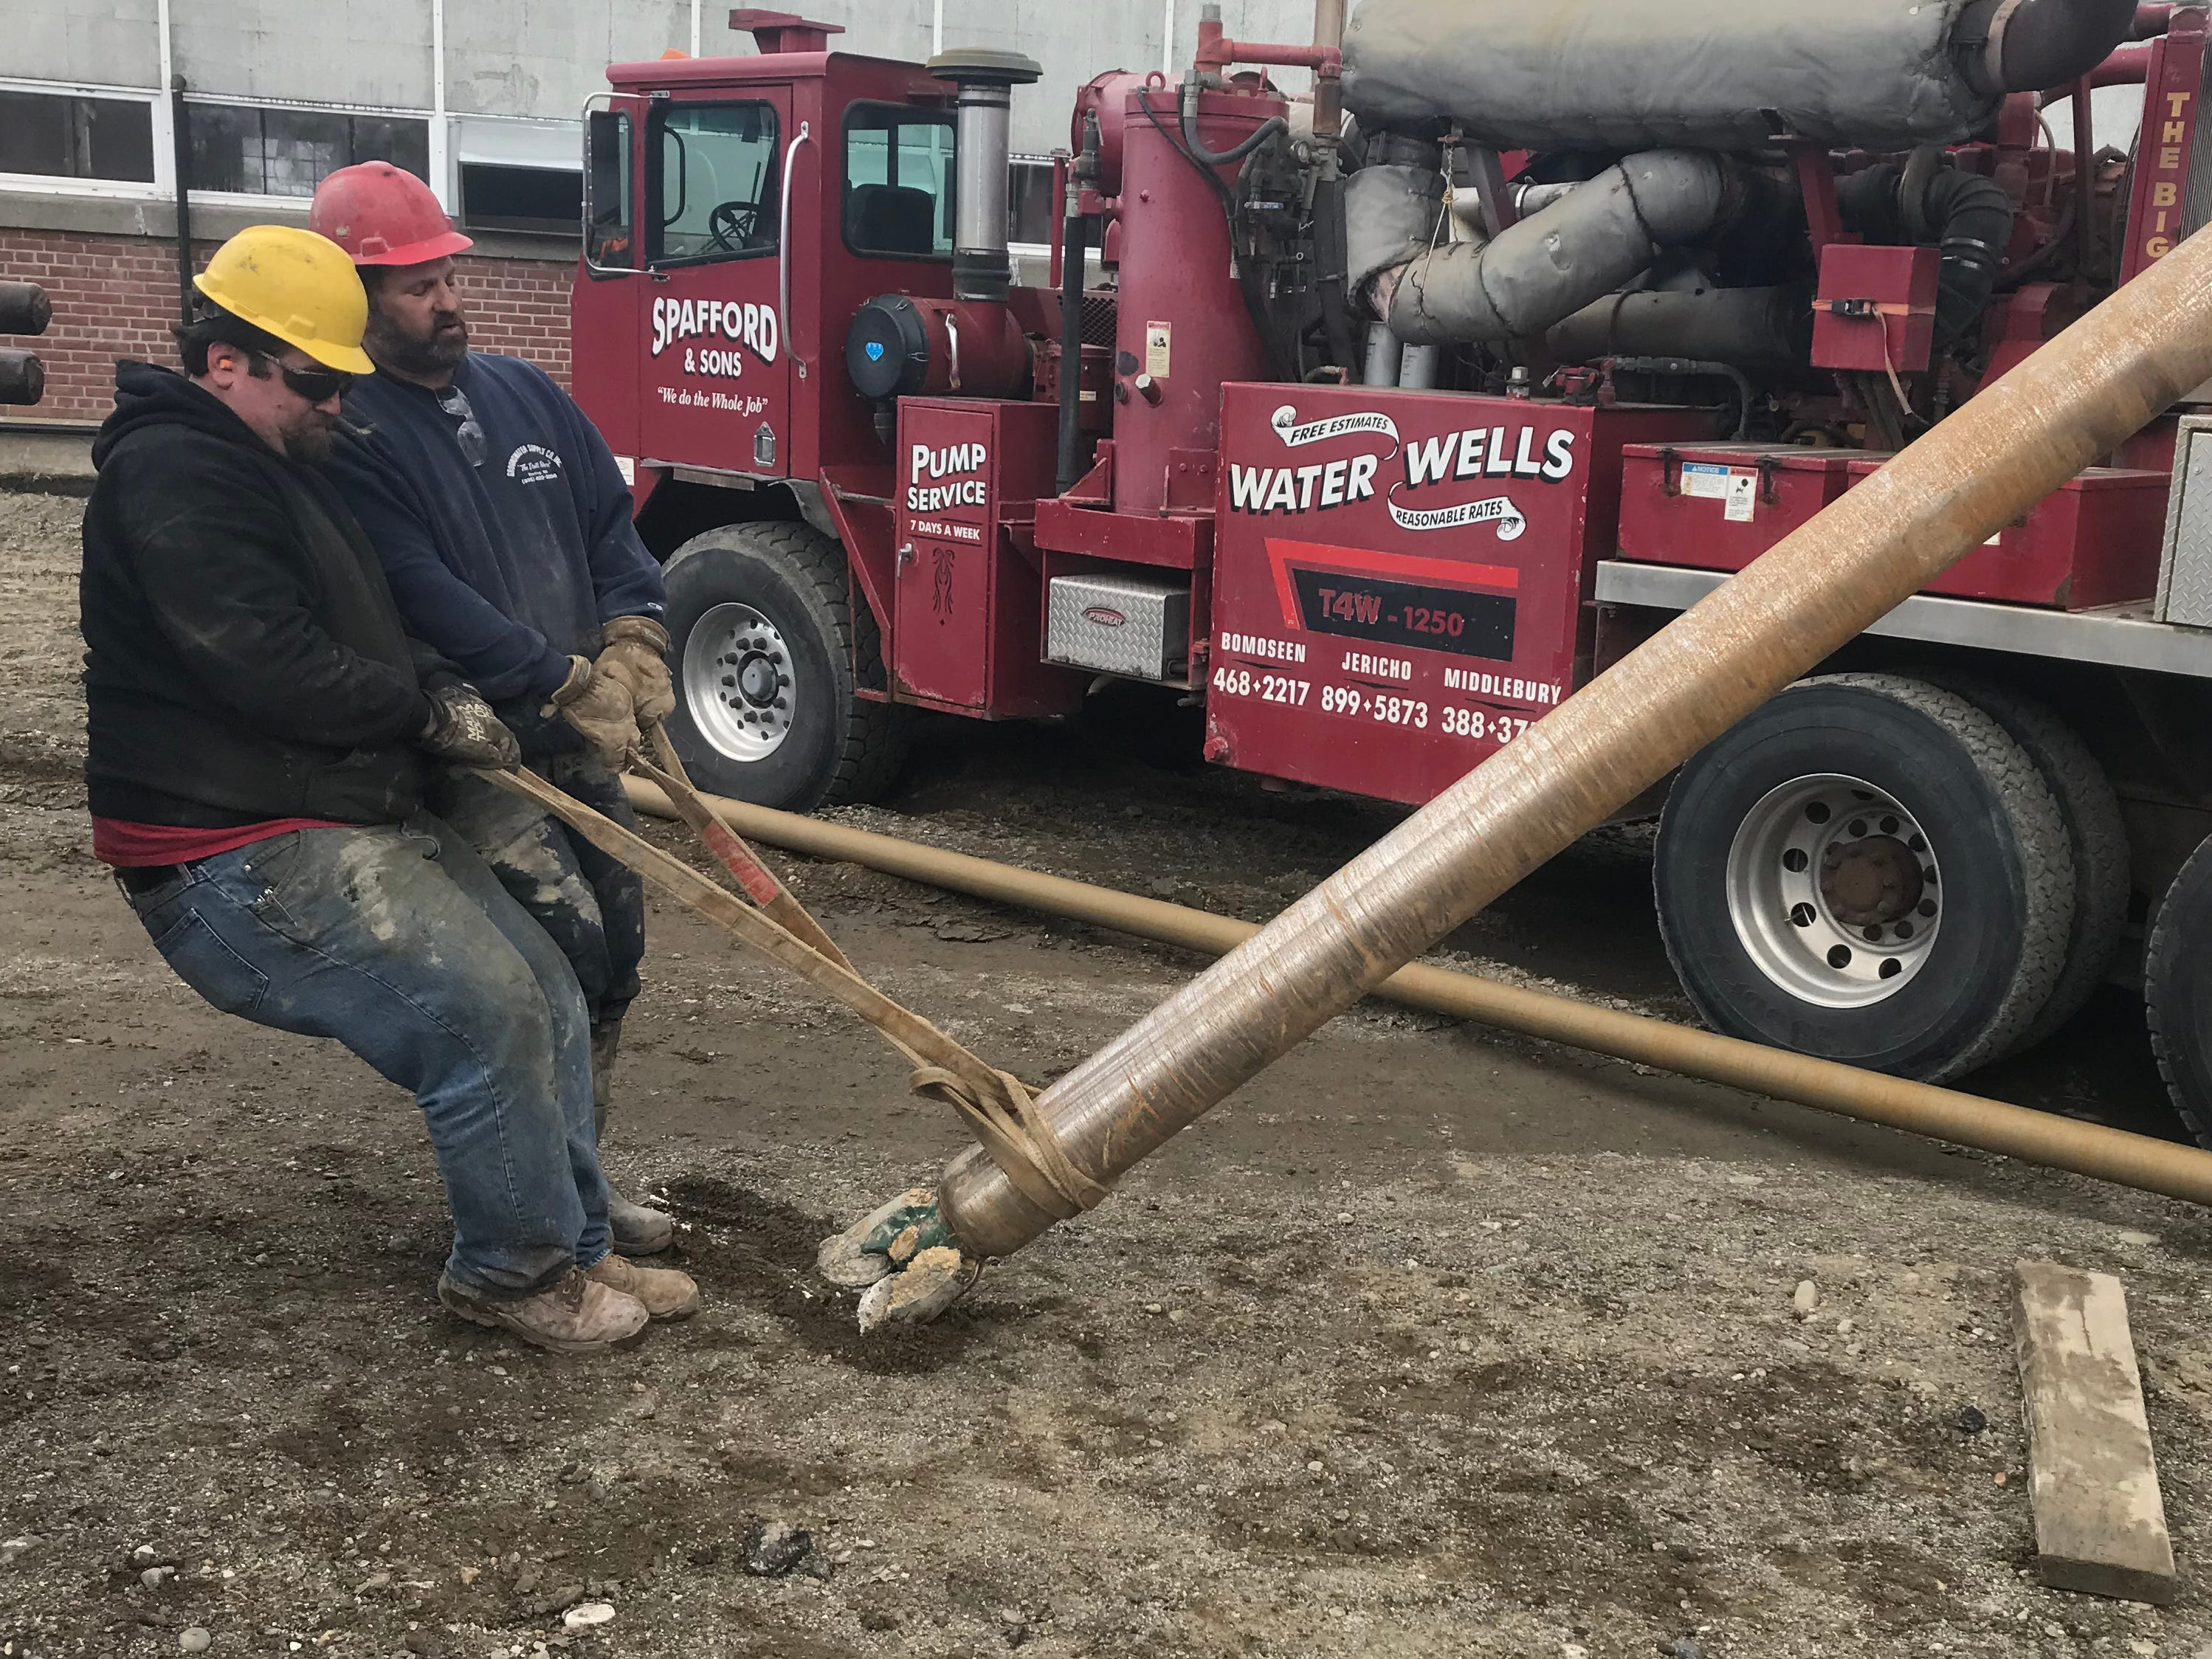 Bret (left) and Tim Williams, co-owners of Spafford & Sons Water Wells, move a drilling shaft at Hula Lakeside — the former Blodgett Ovens factory — in Burlington on Tuesday, April 16, 2019.